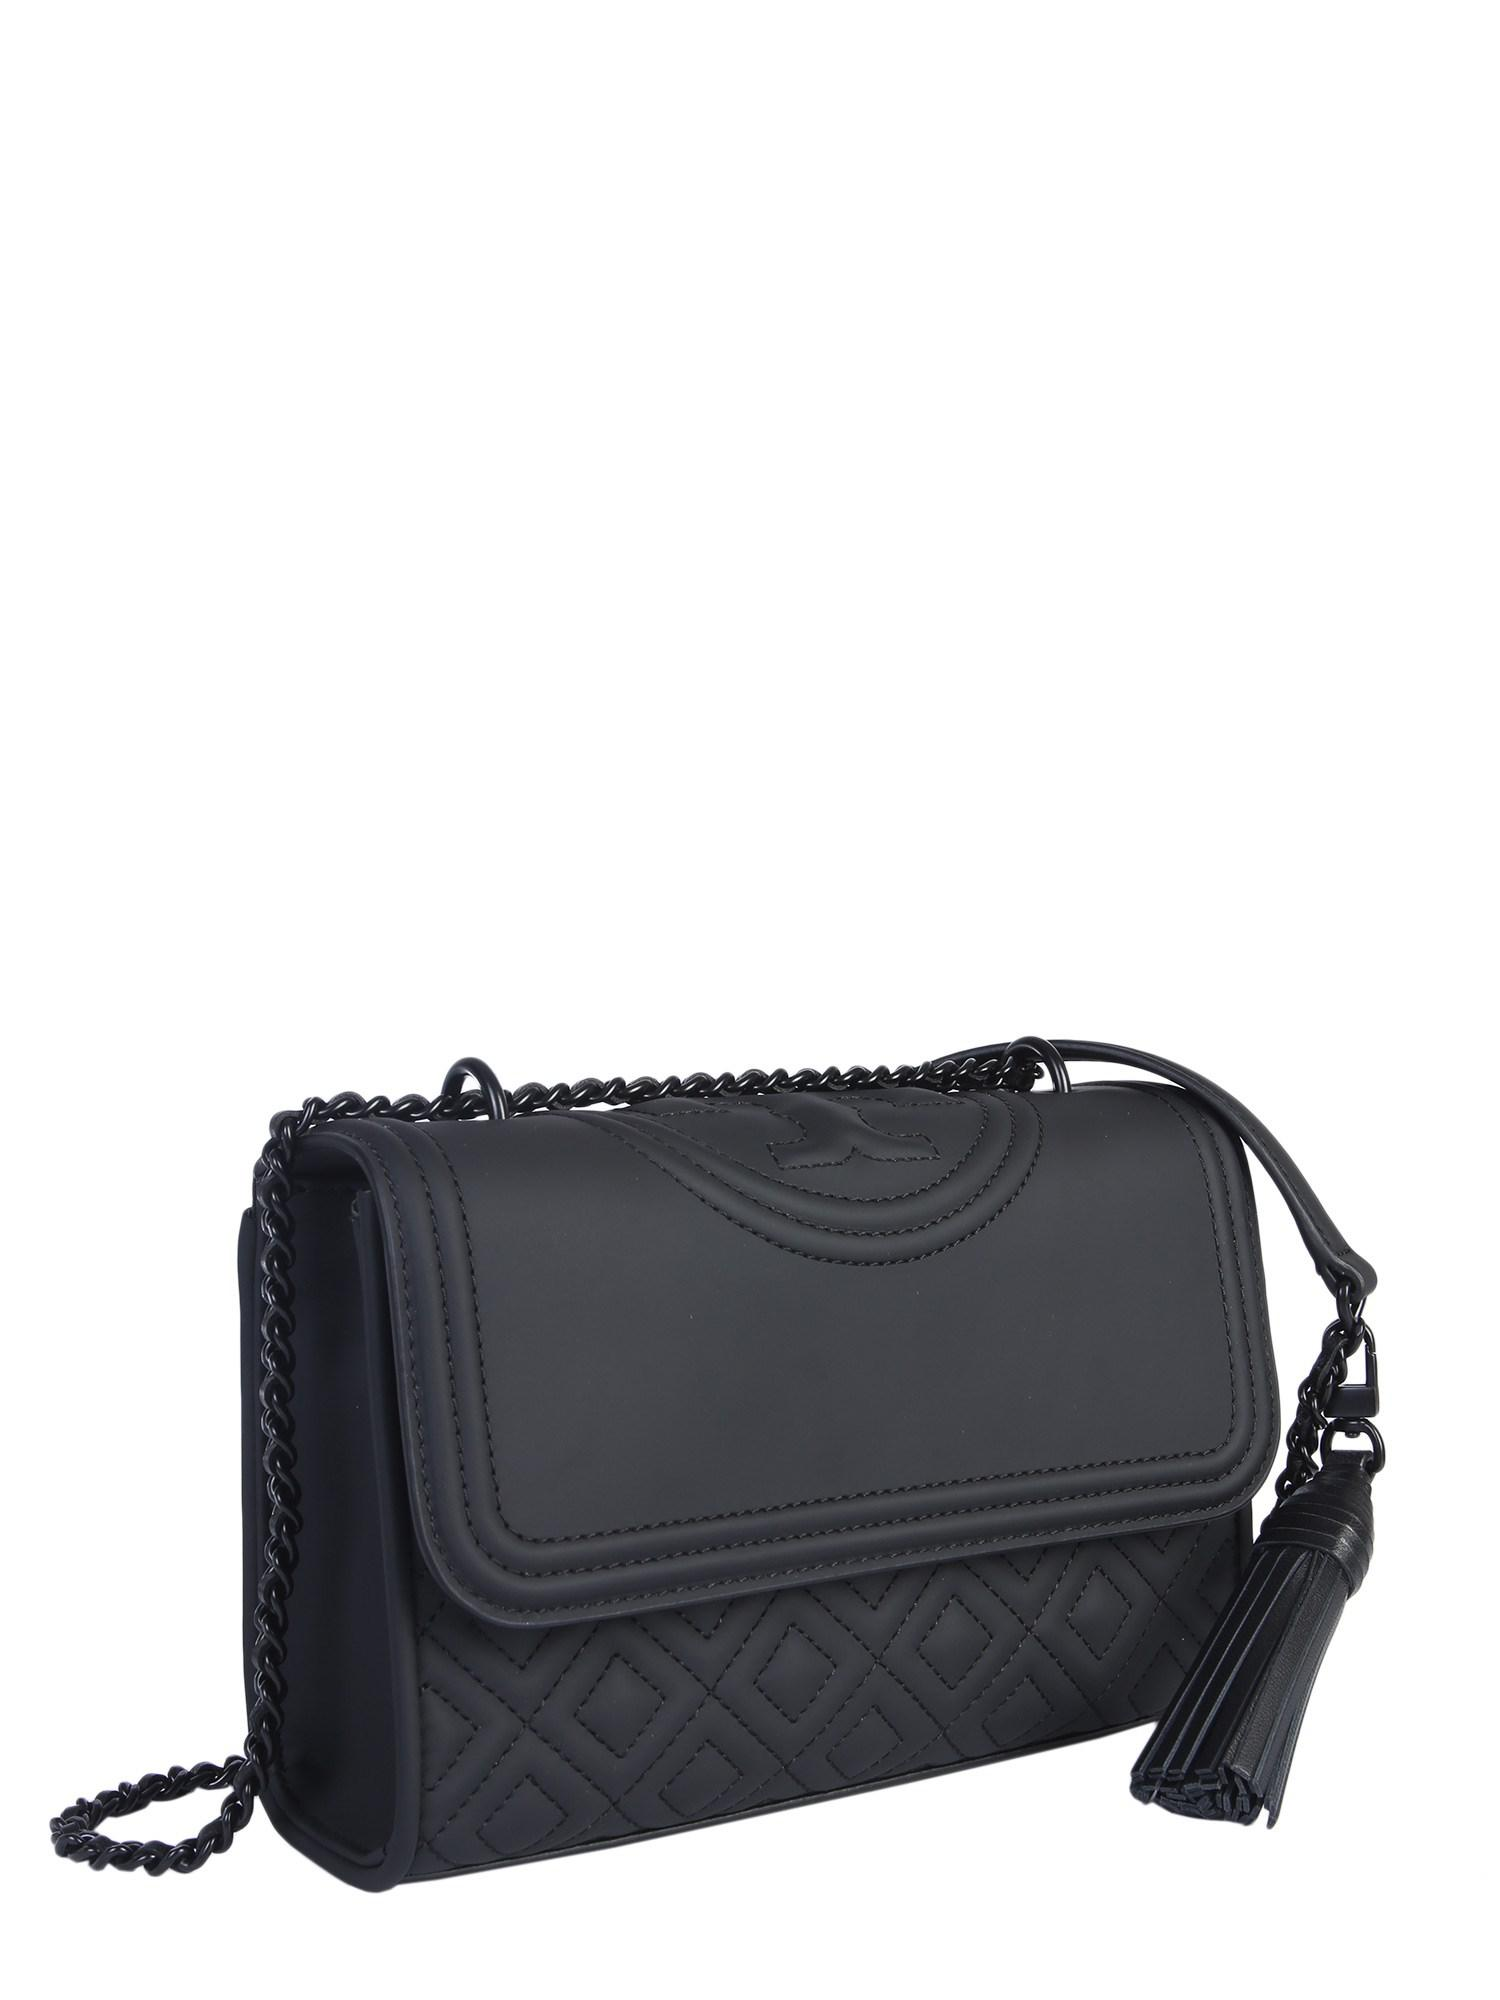 3d4a5ef5b89b Tory Burch - Black Small Fleming Matte Bag In Quilted Leather - Lyst. View  fullscreen